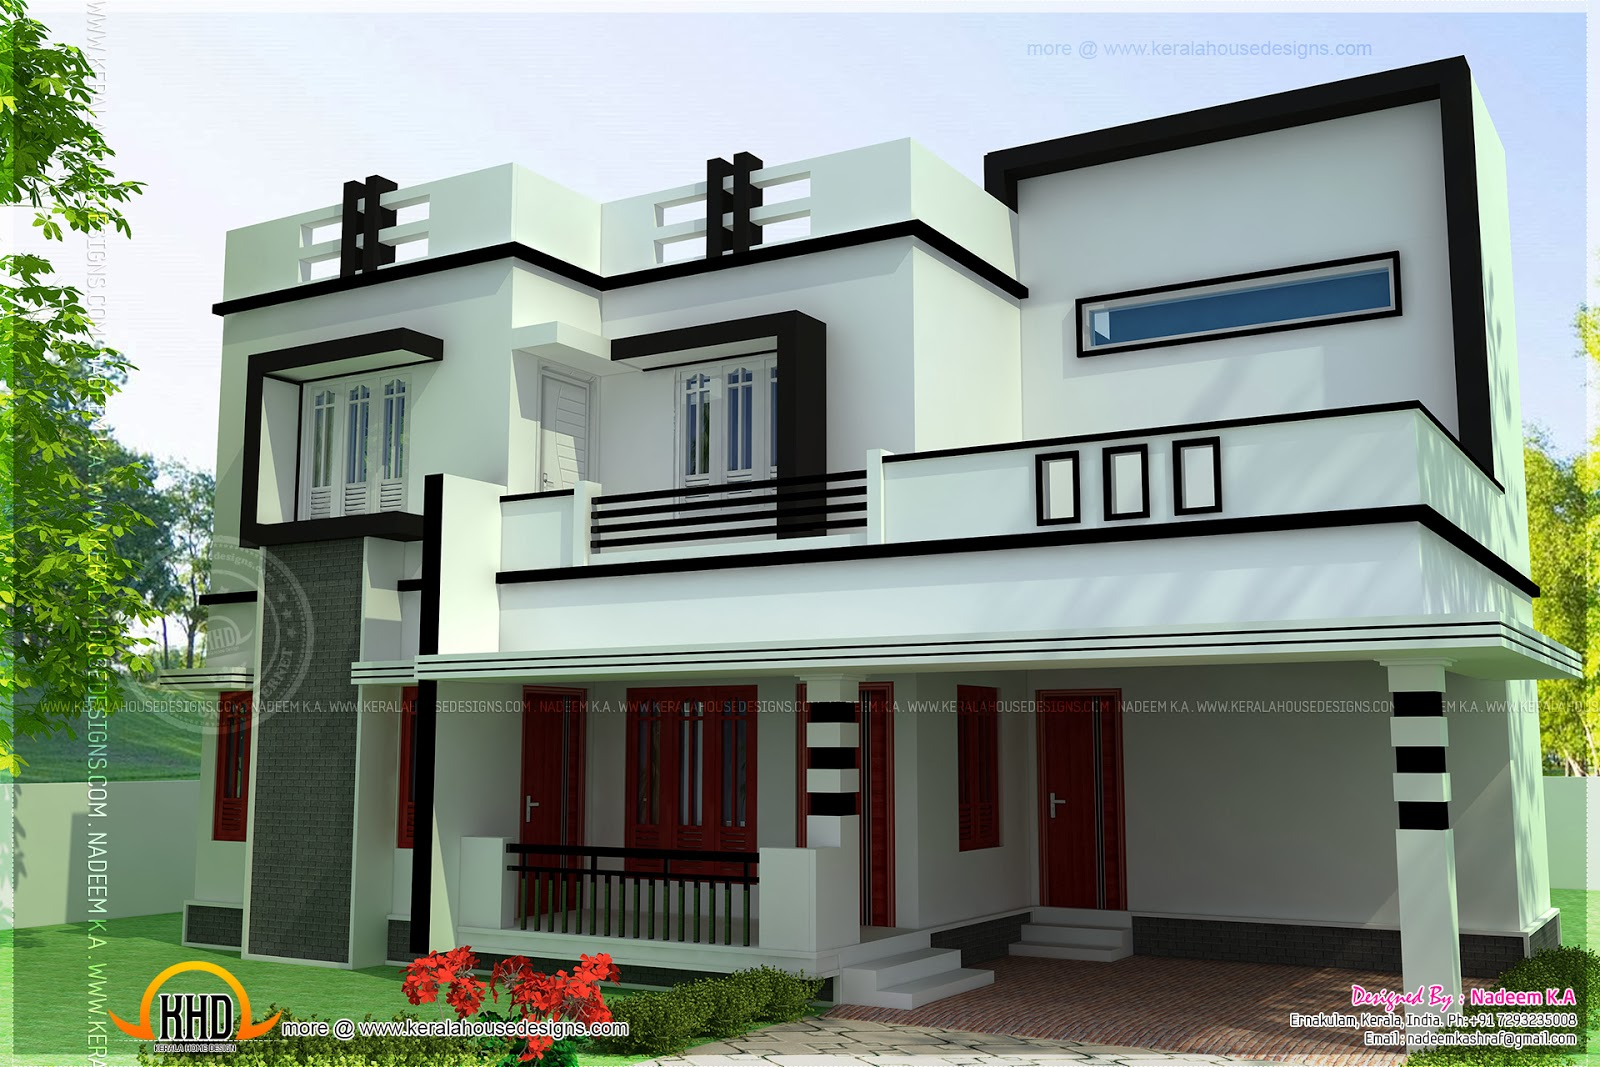 Flat roof 4 bedroom modern house kerala home design and for Modern house plans and designs in kenya